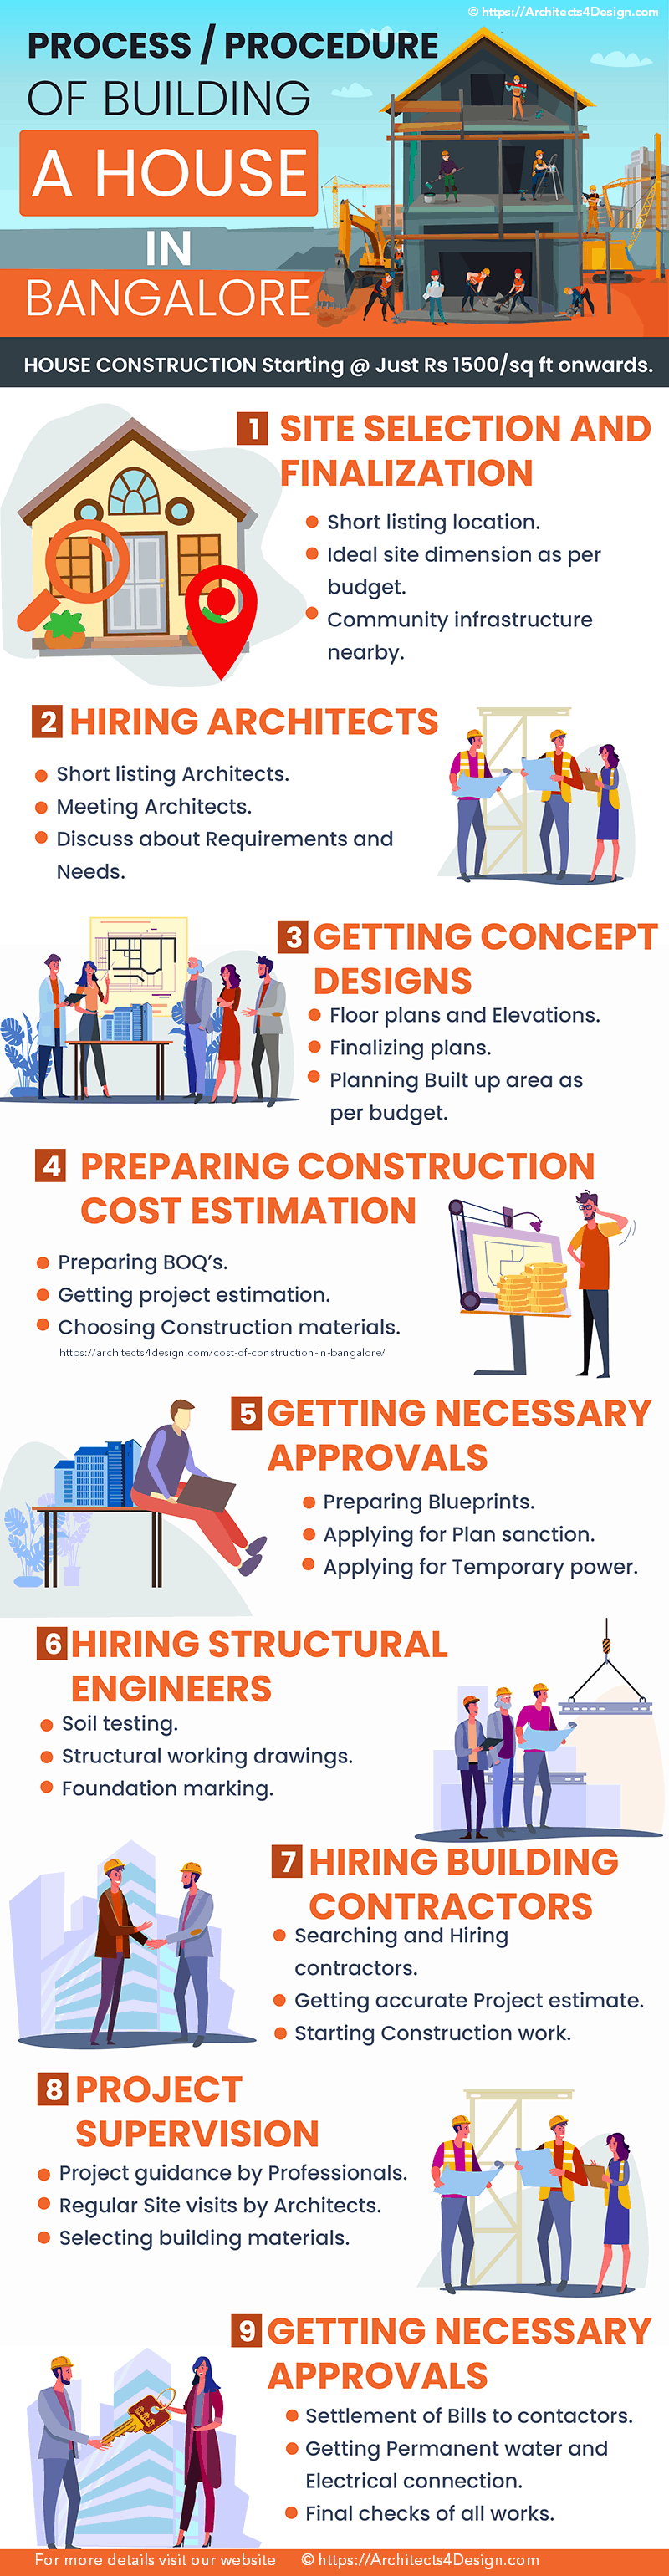 Process Procedure Of Building A House In Bangalore A Must Read House Construction Tips Government Approvals Required Before Construction Of A House